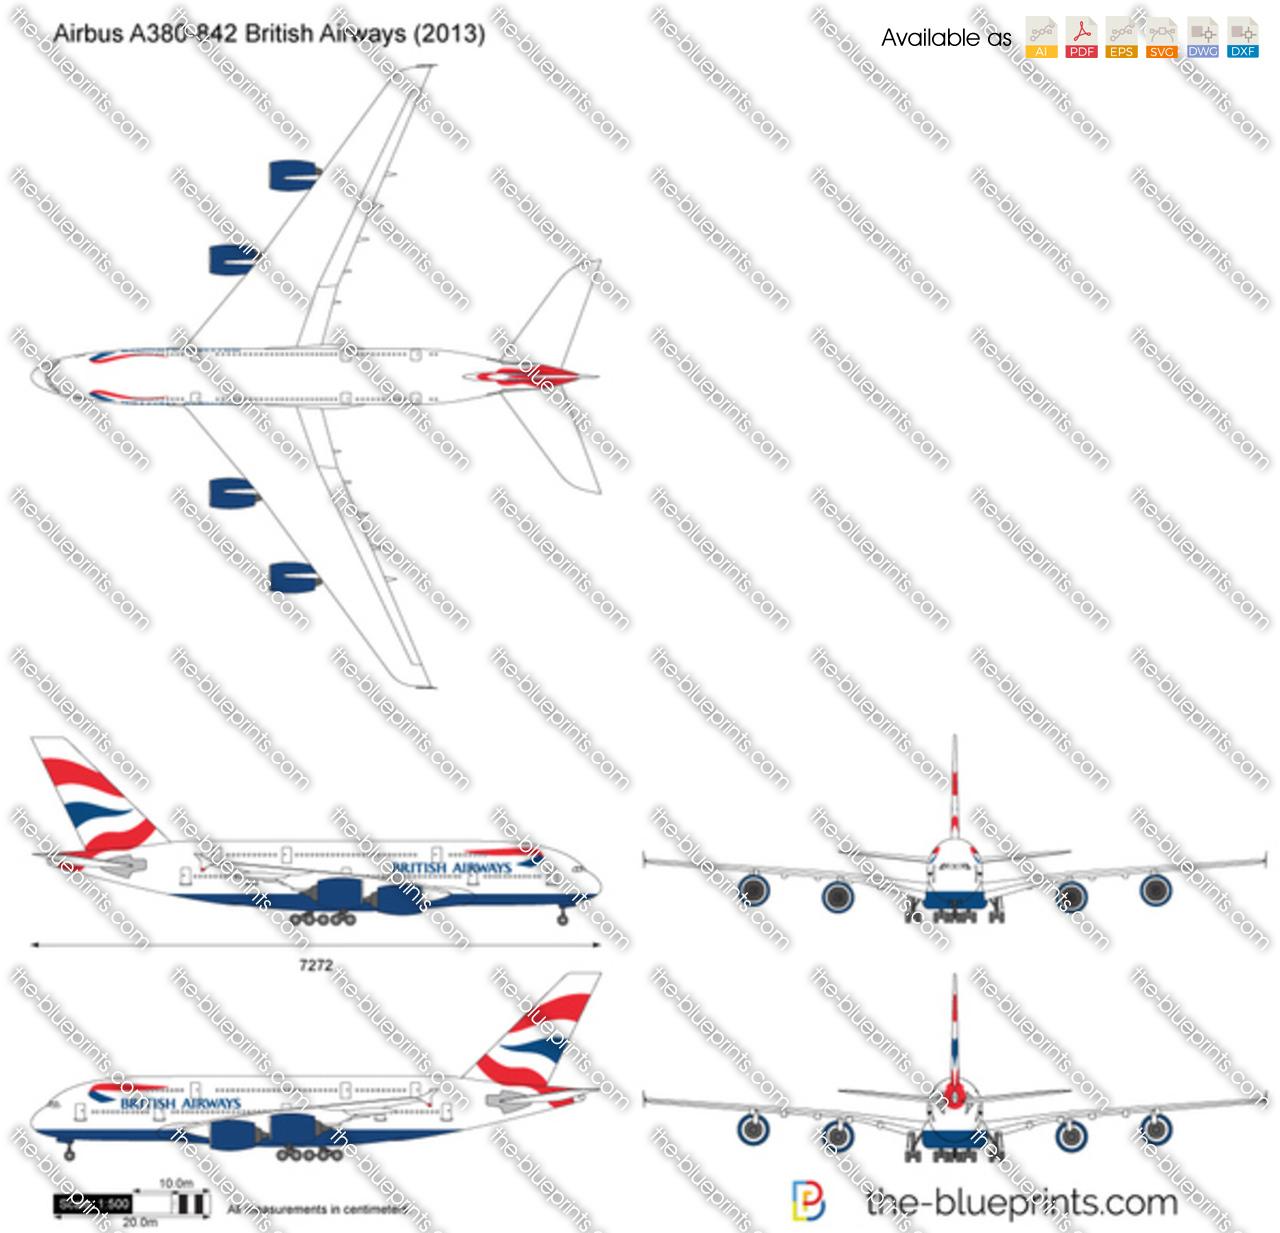 Airbus A380-842 British Airways 2013